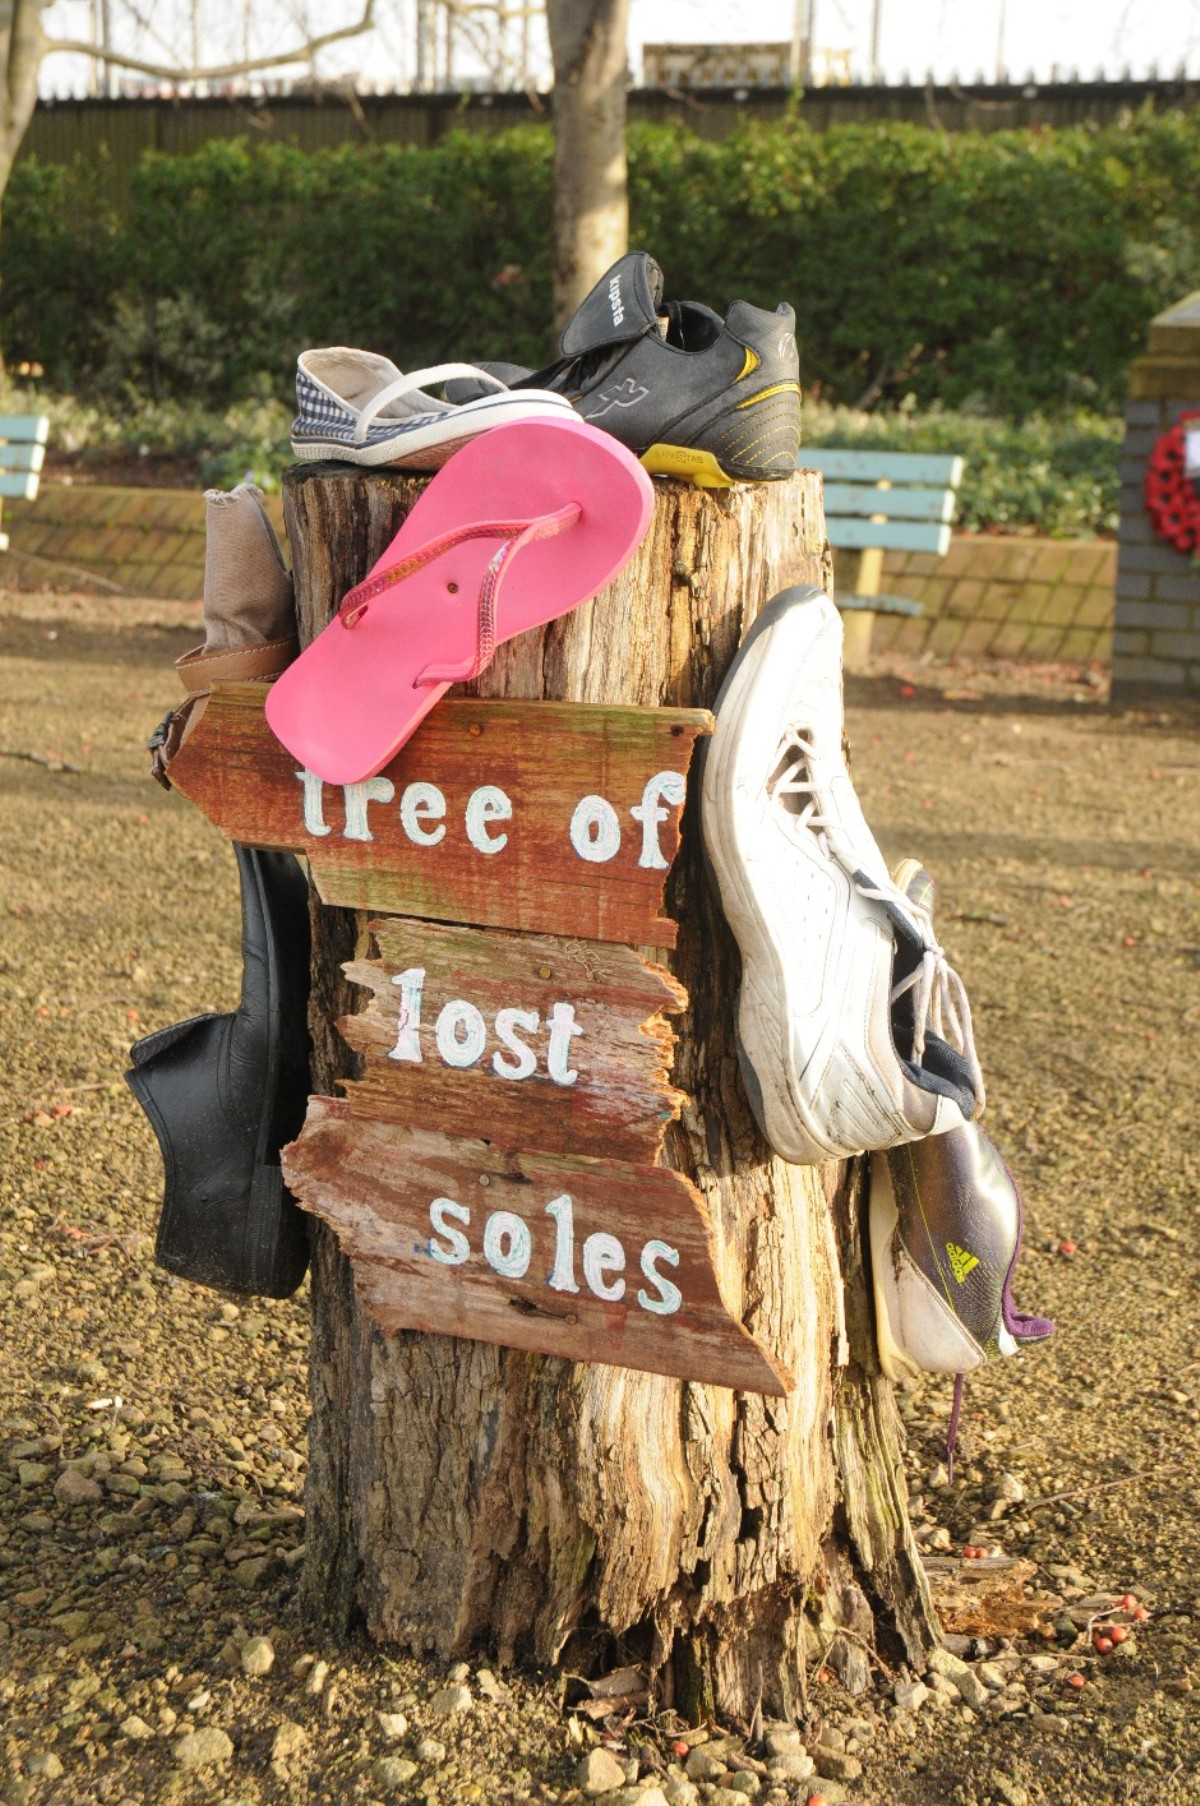 Mystery of Altrincham's 'tree of lost soles'